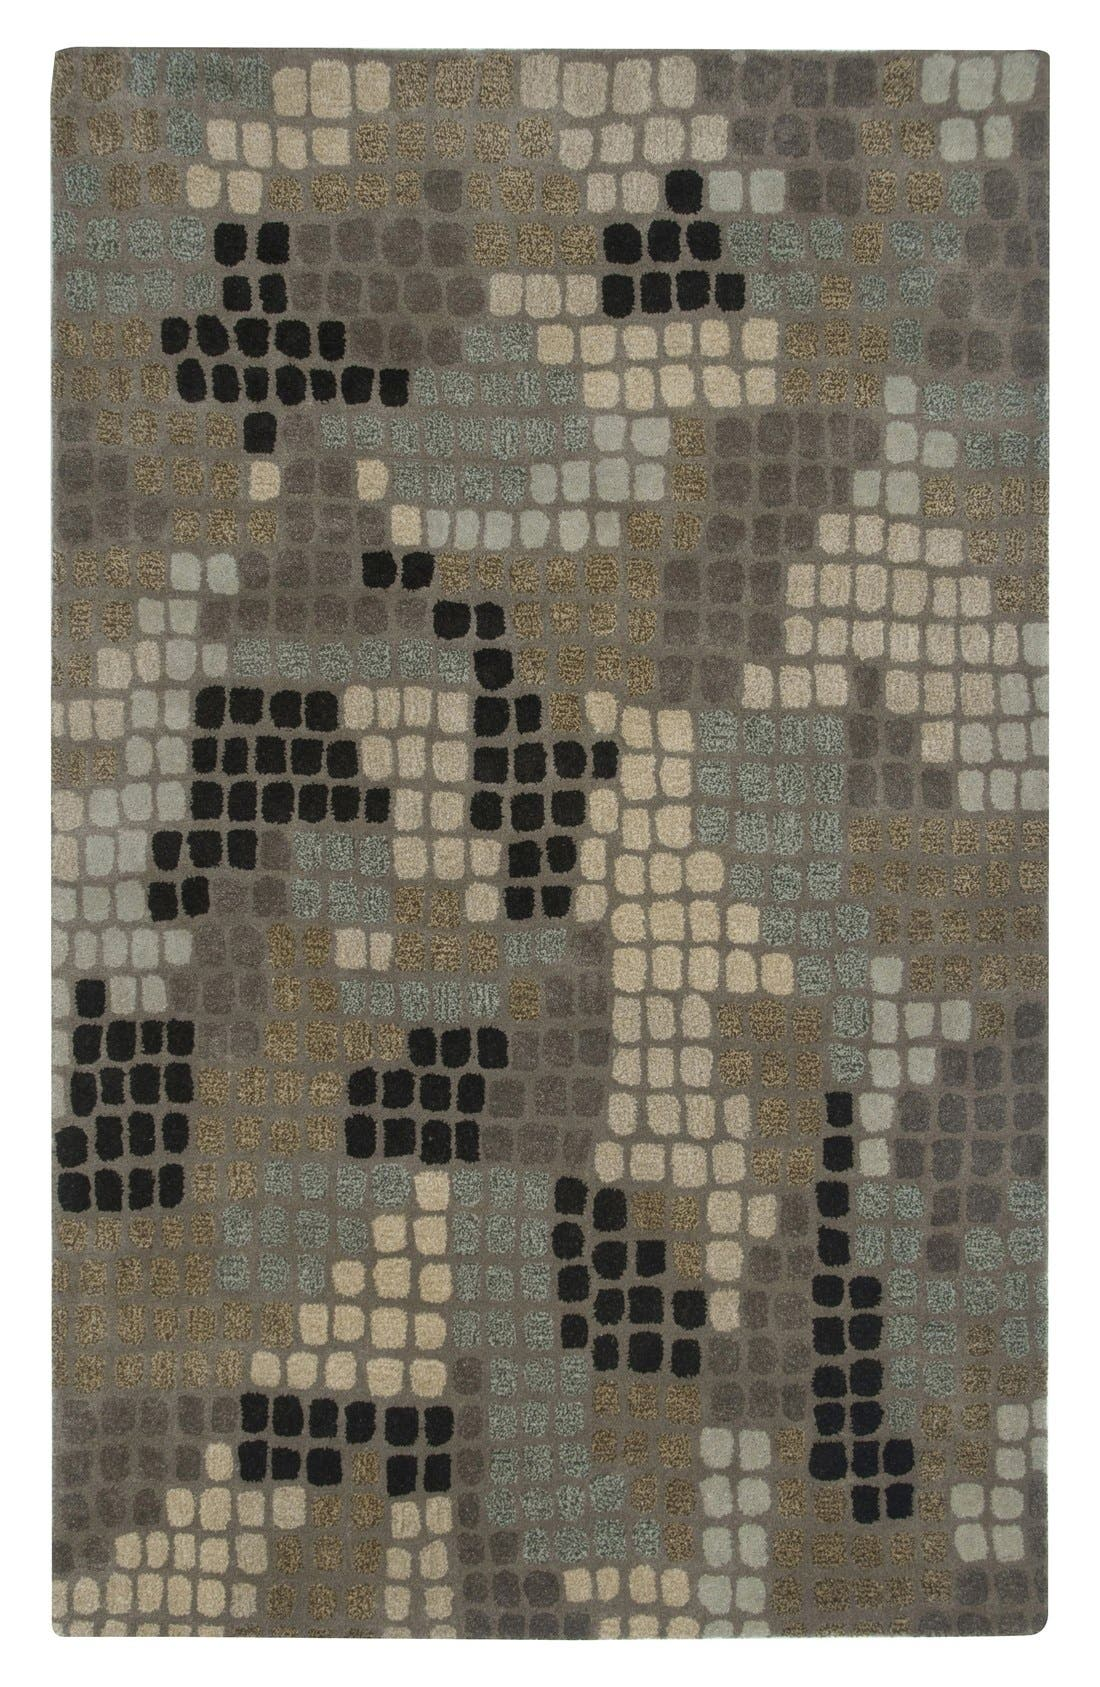 'Pandora Collection' Hand Tufted Wool Blend Area Rug,                         Main,                         color, Grey/ Multi